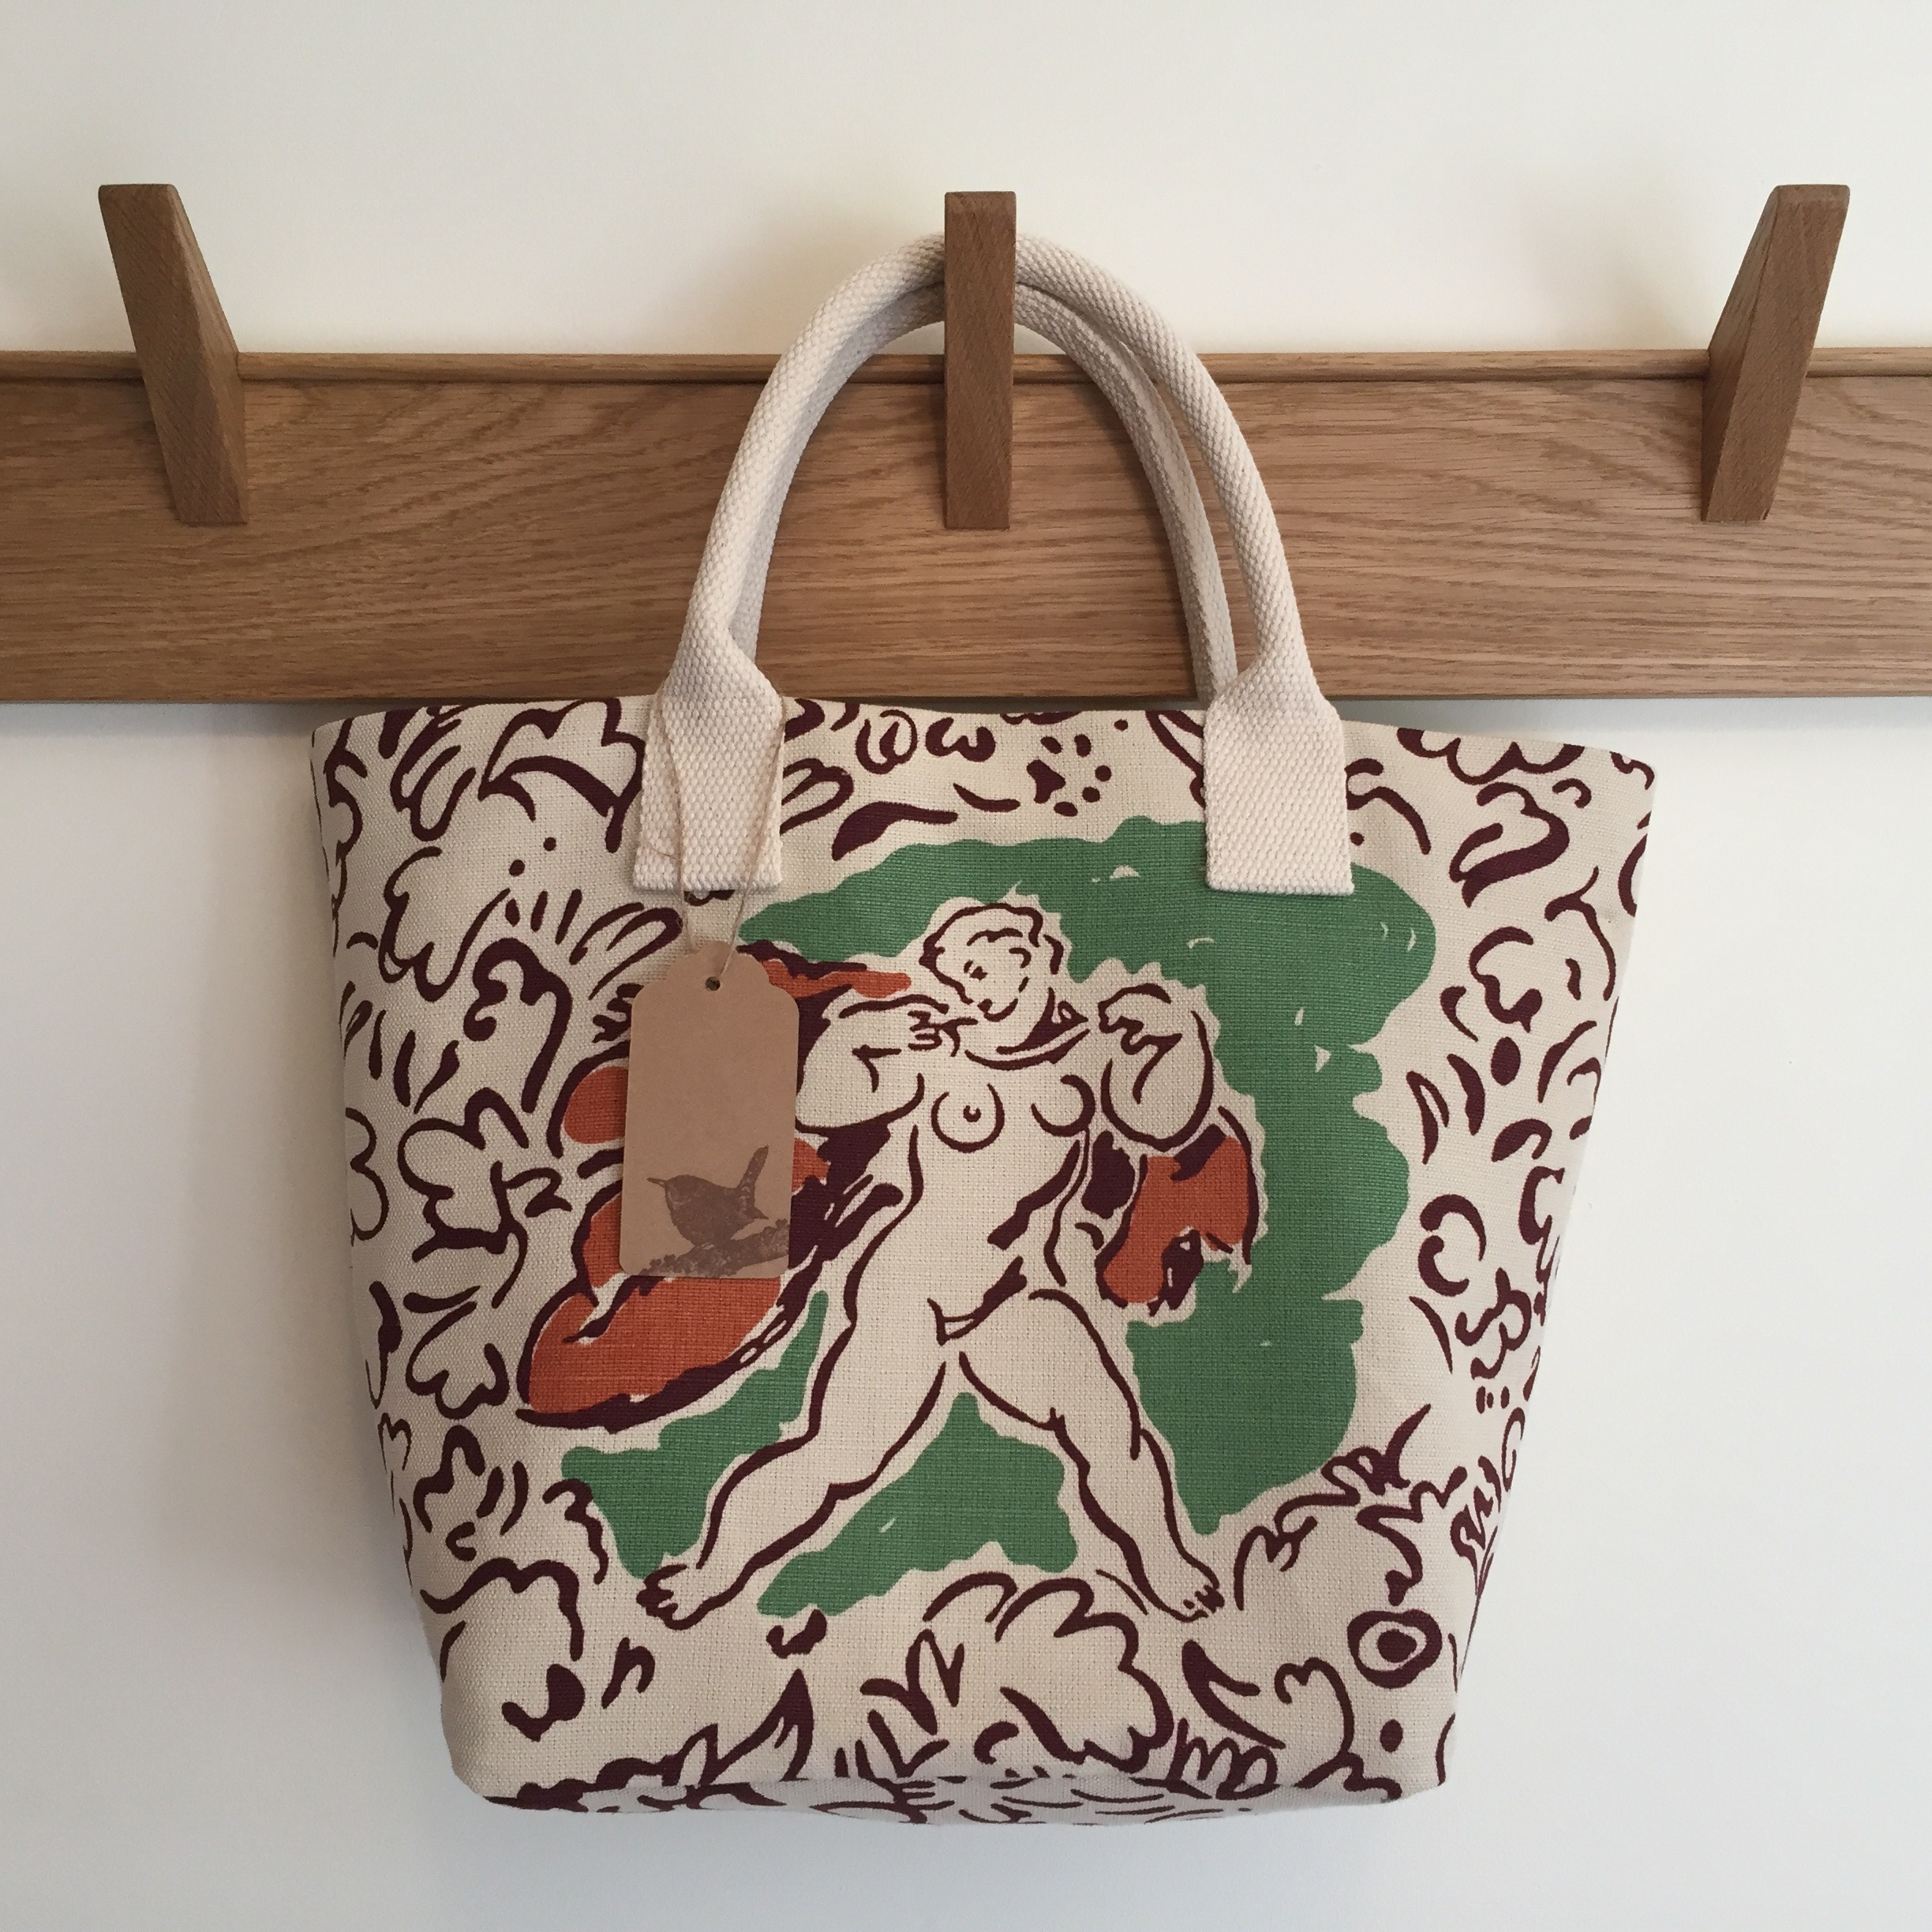 West Wind Tote